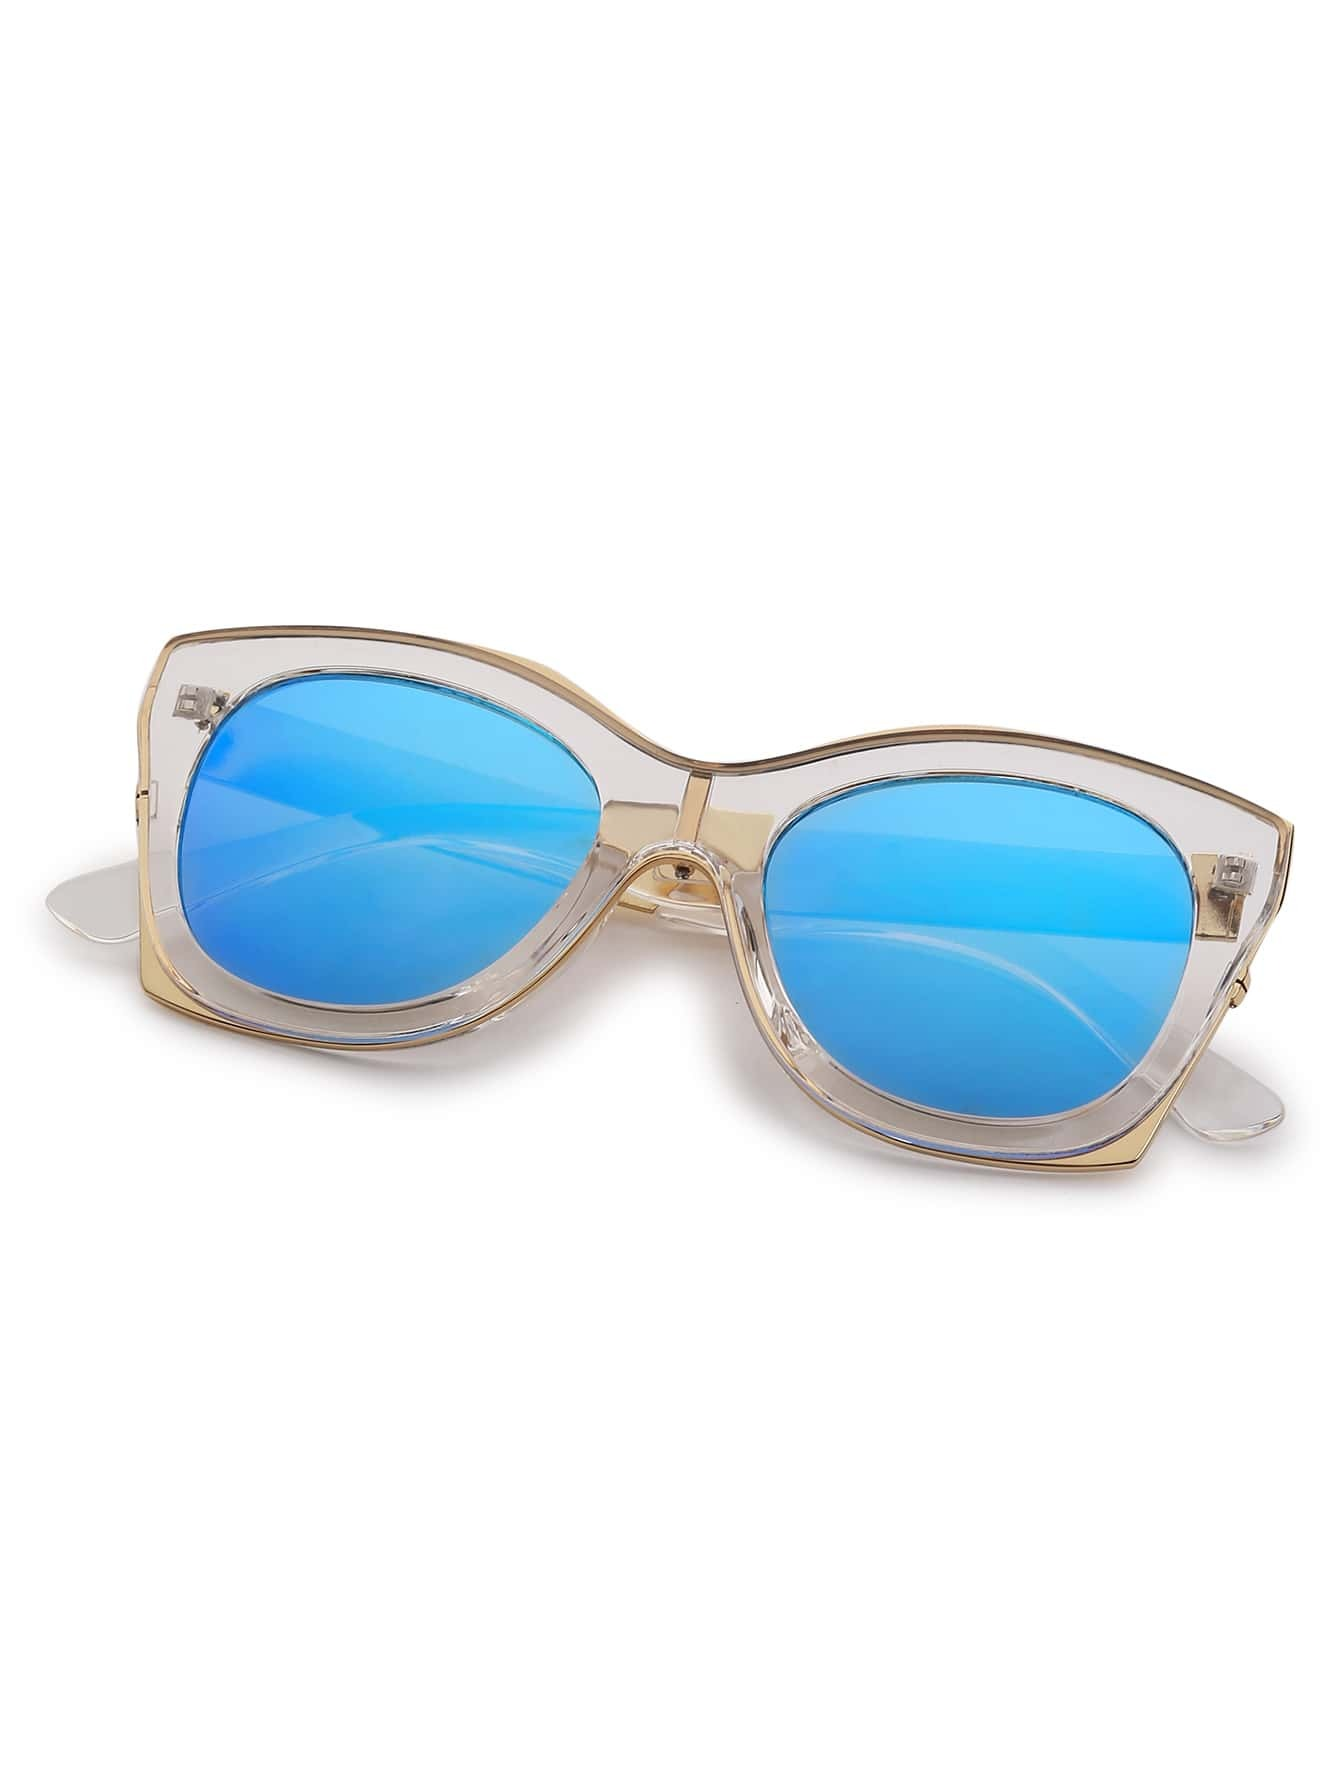 40839abf3b Clear Sunglasses With Blue Lenses « Heritage Malta